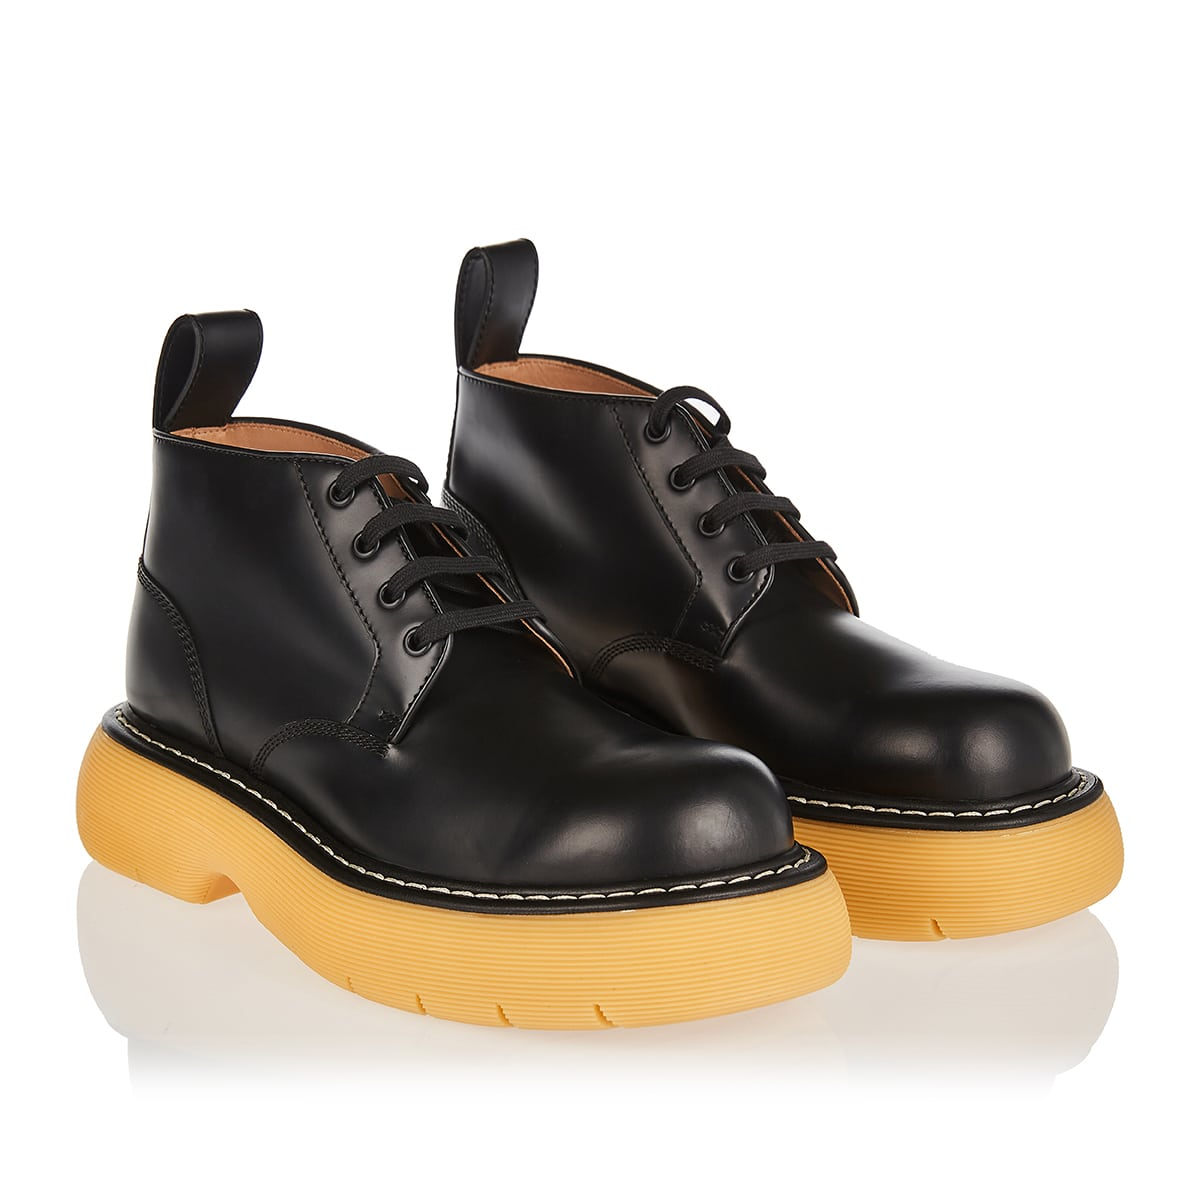 The Bounce leather ankle boots